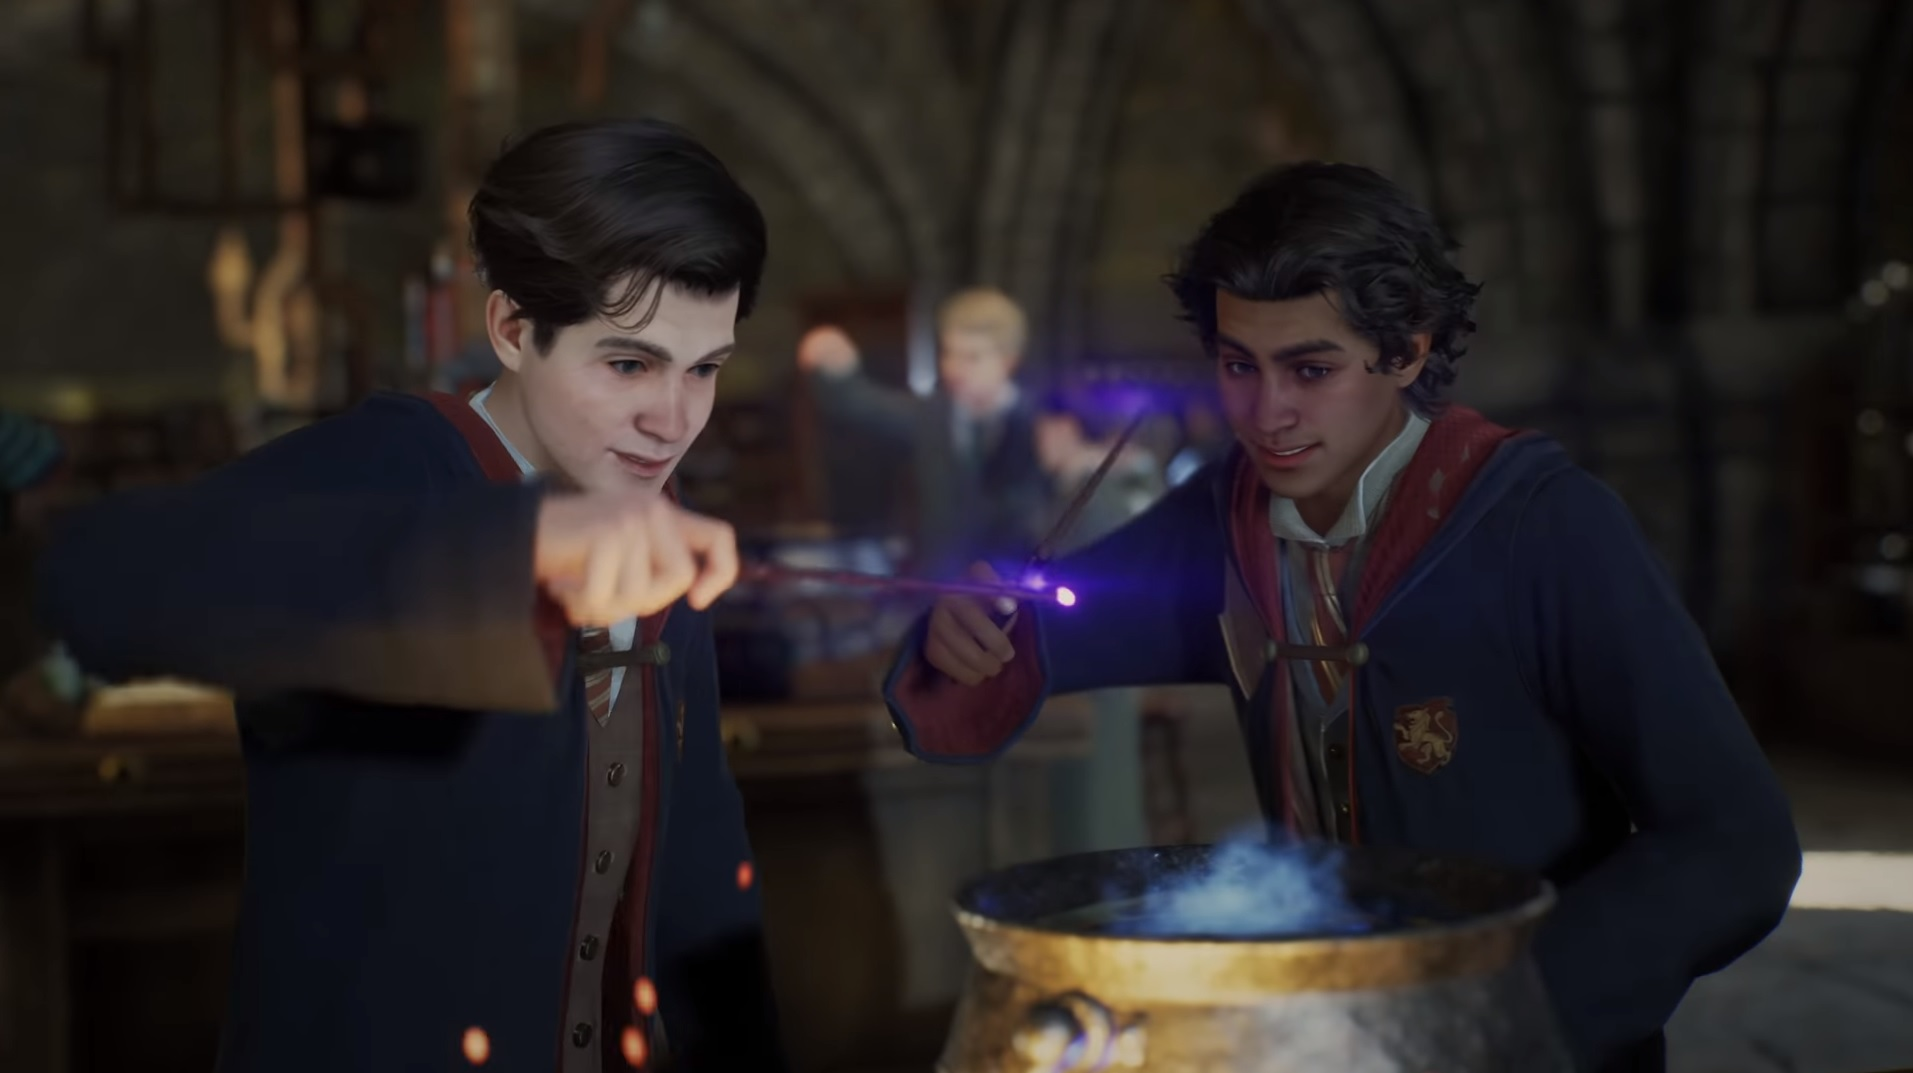 Producer on Hogwarts Legacy quits after history of anti-social justice videos exposed